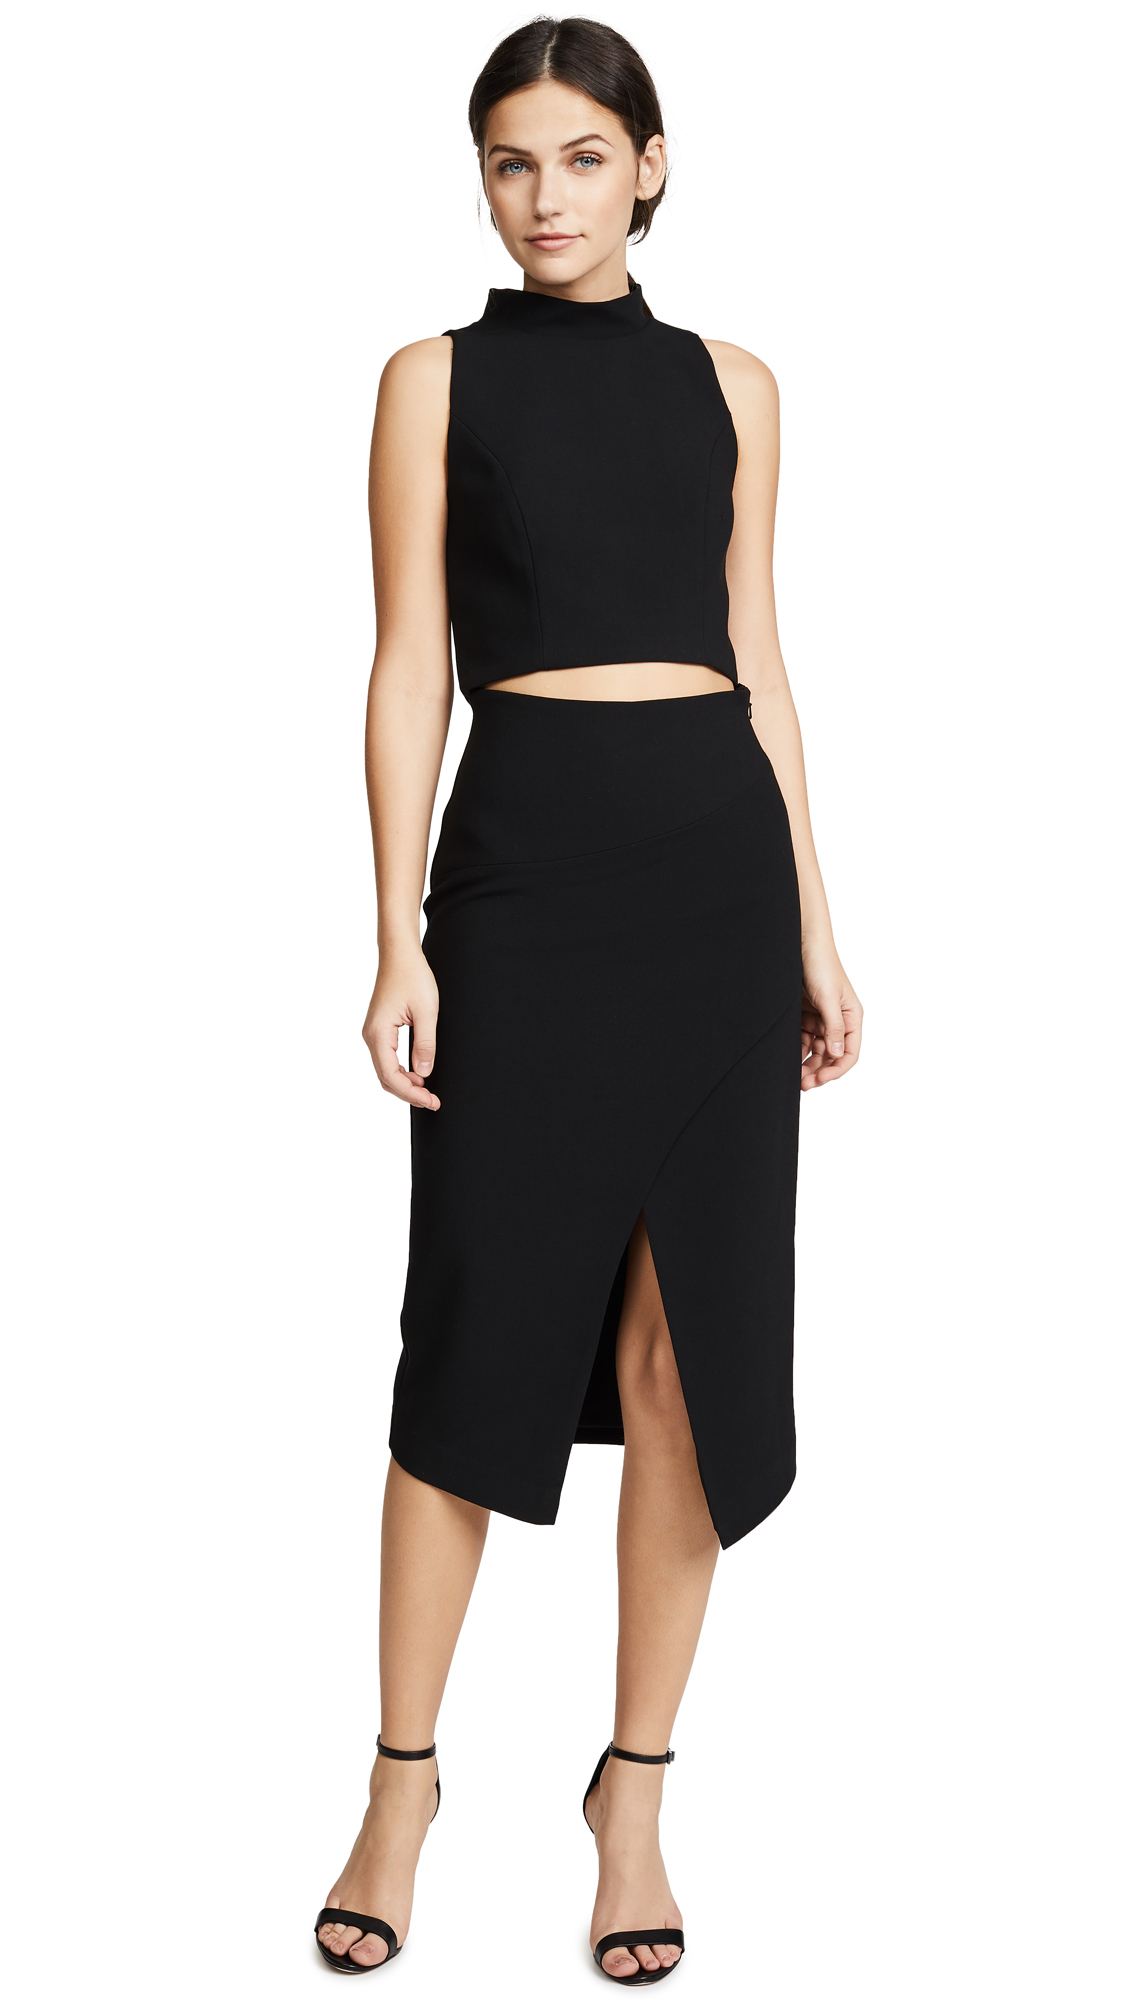 Black Halo Juma Two Piece Dress - Black